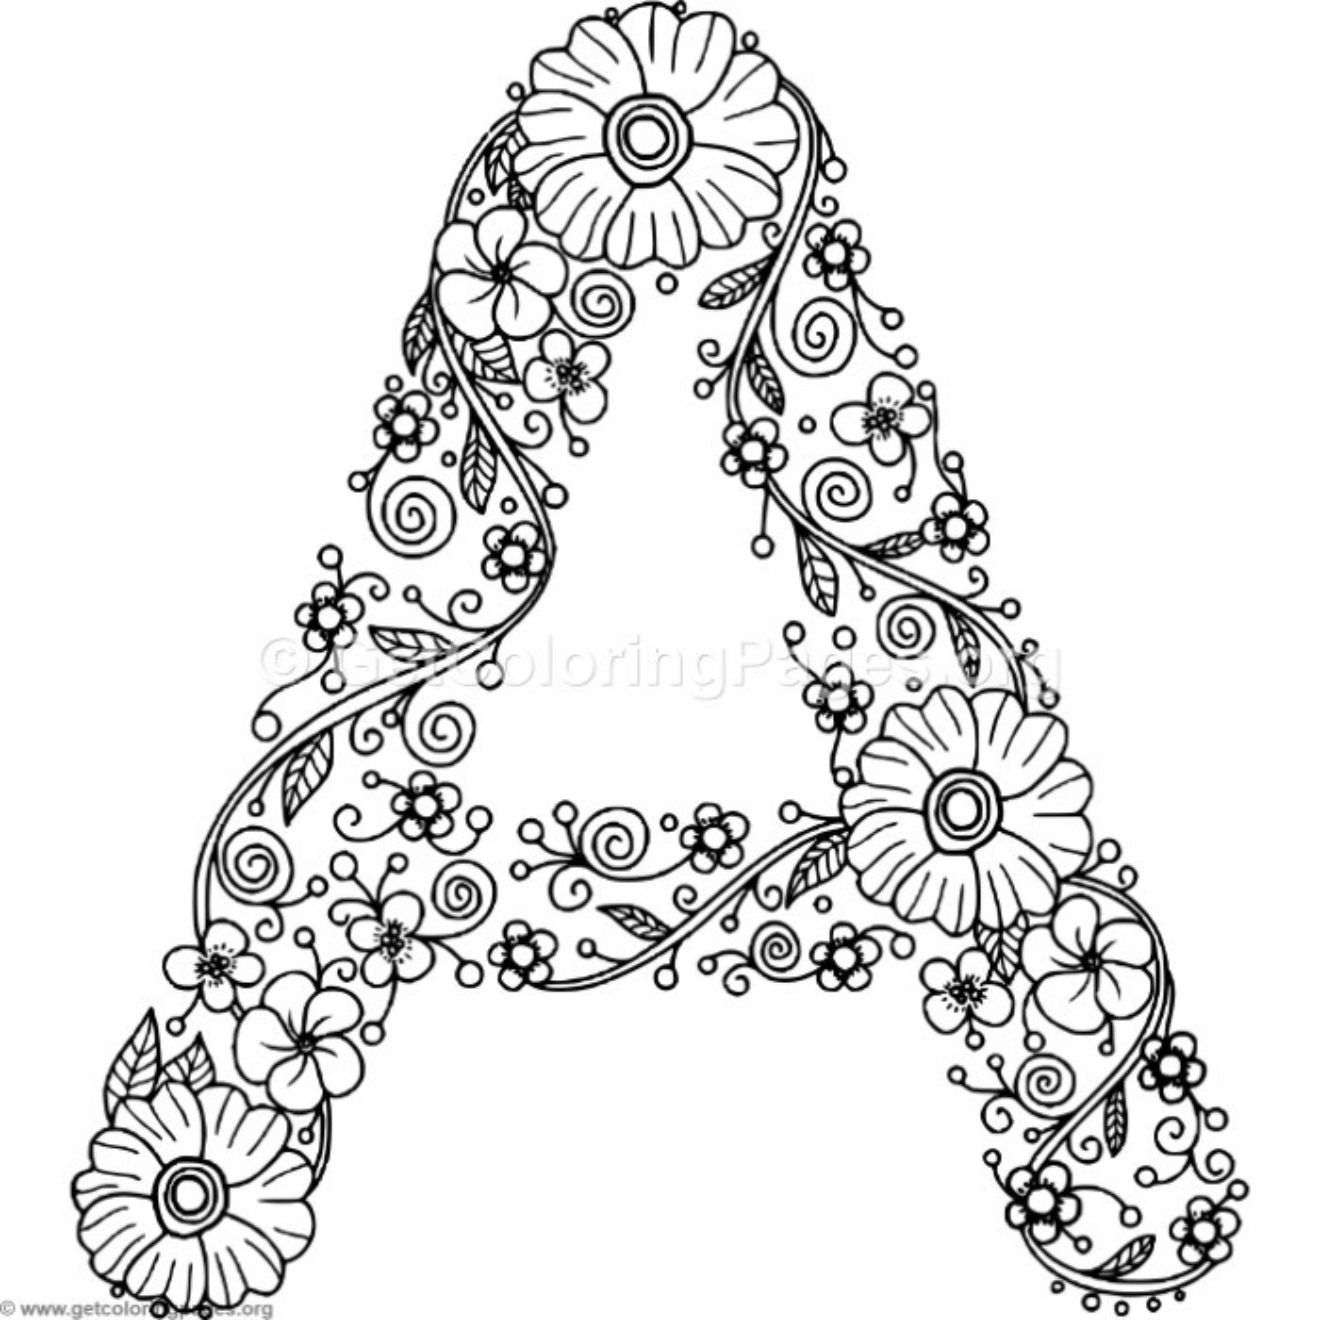 coloring picture of letter a flower inspired alphabet letter a coloring pages picture letter a coloring of